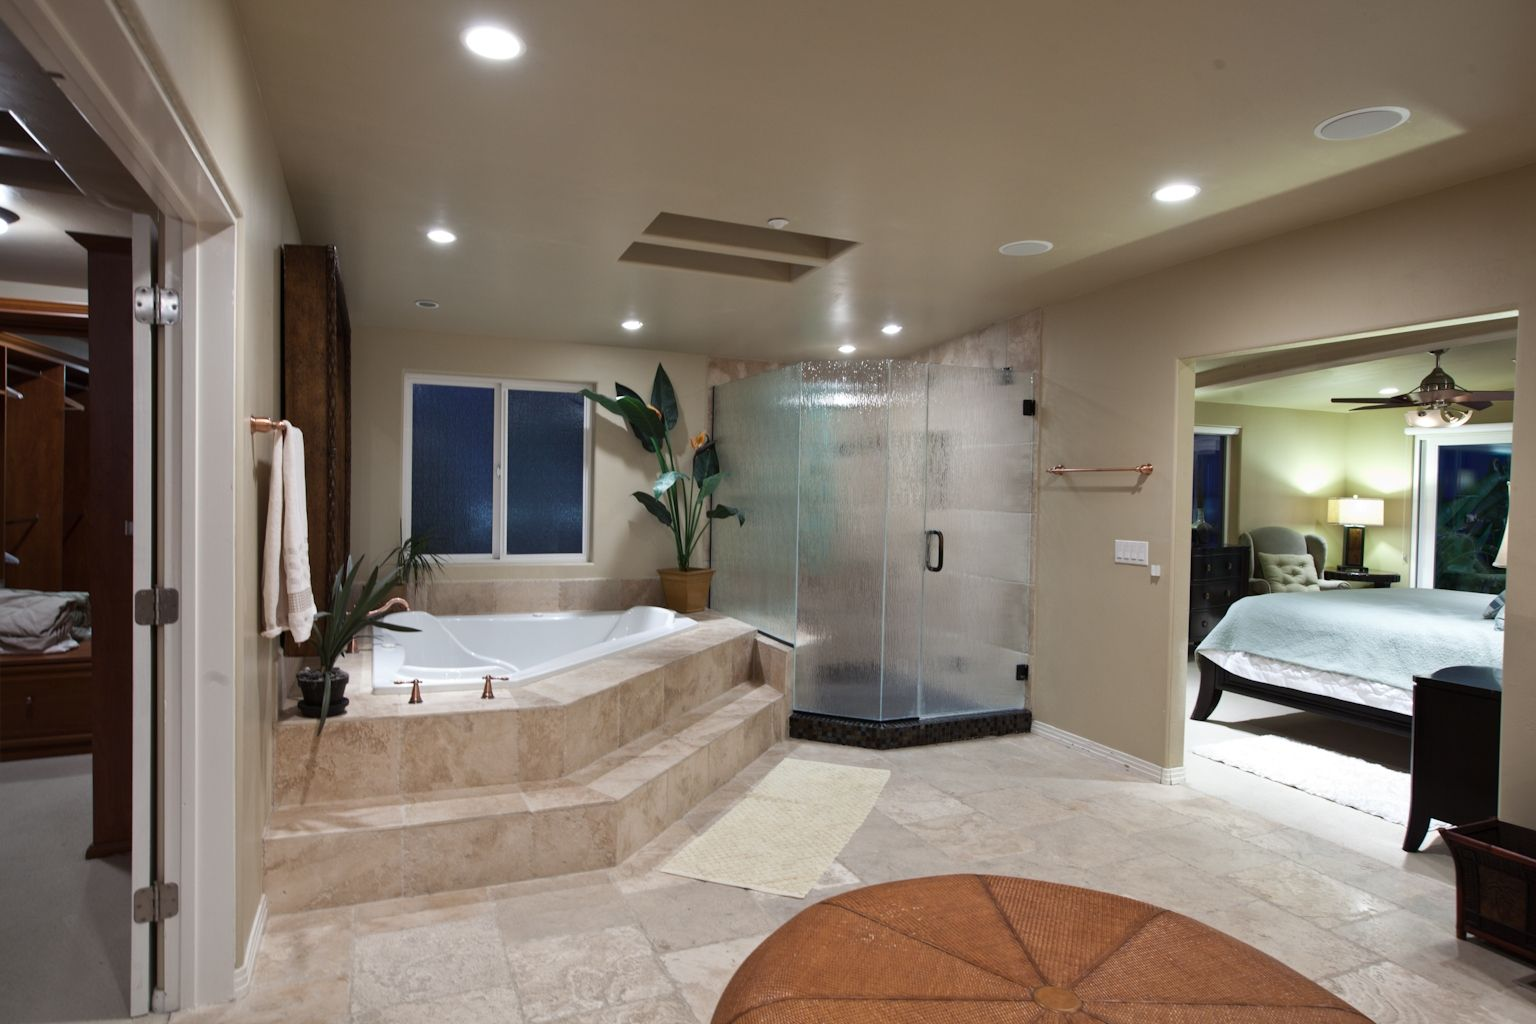 Master bathroom designs master bathroom bedroom interior for Bathroom bedroom design